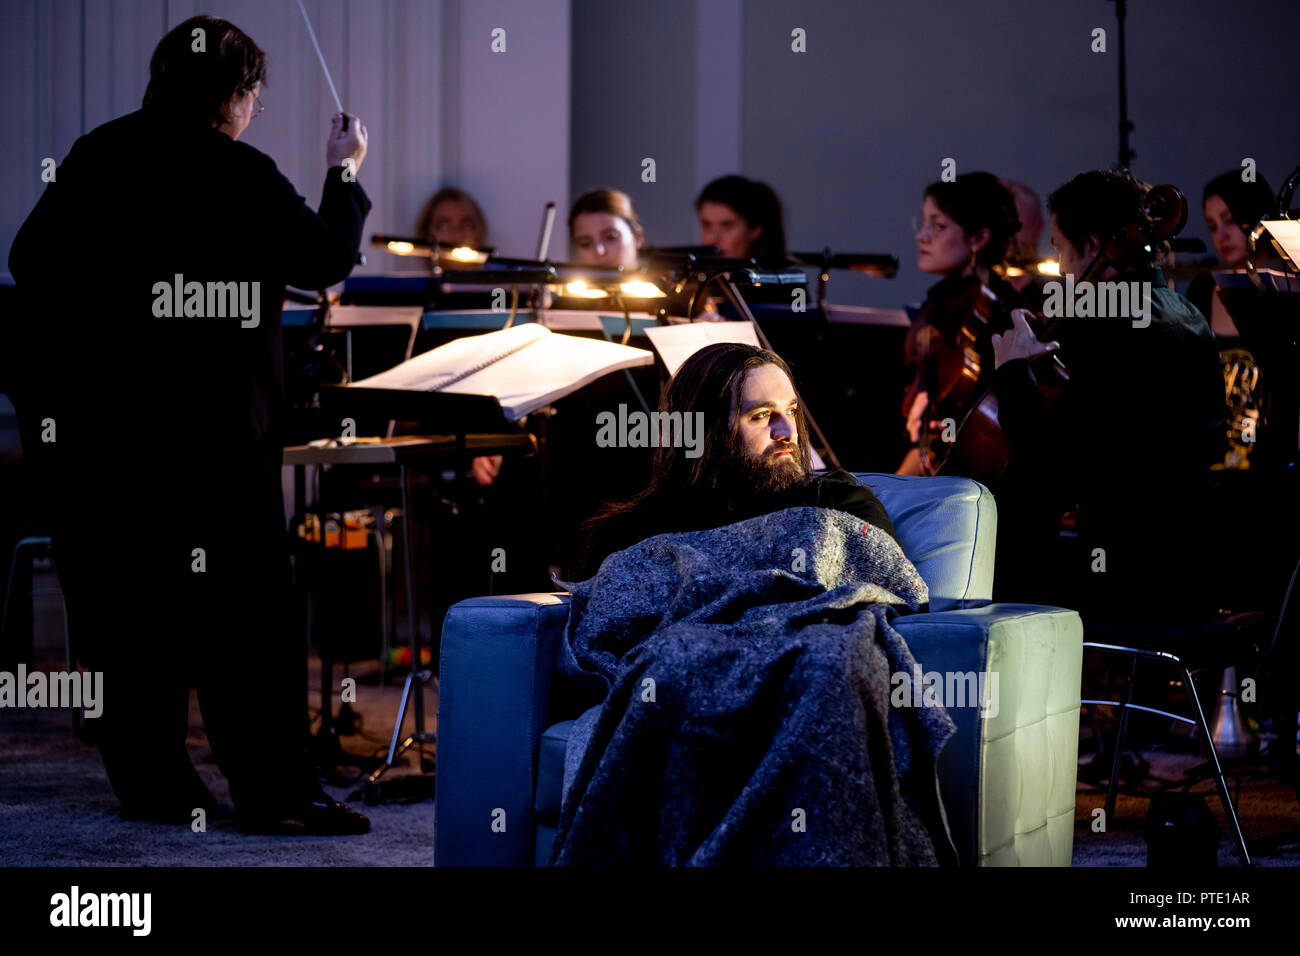 09 October 2018, Berlin: David O·trek appears in the role of Roderick Usher at the photo rehearsal for the premiere of 'Usher' by Claude Debussy and Annelies Van Parys in the production of Philippe Quesne at the Staatsoper Unter den Linden. Photo: Christoph Soeder/dpa - Stock Image